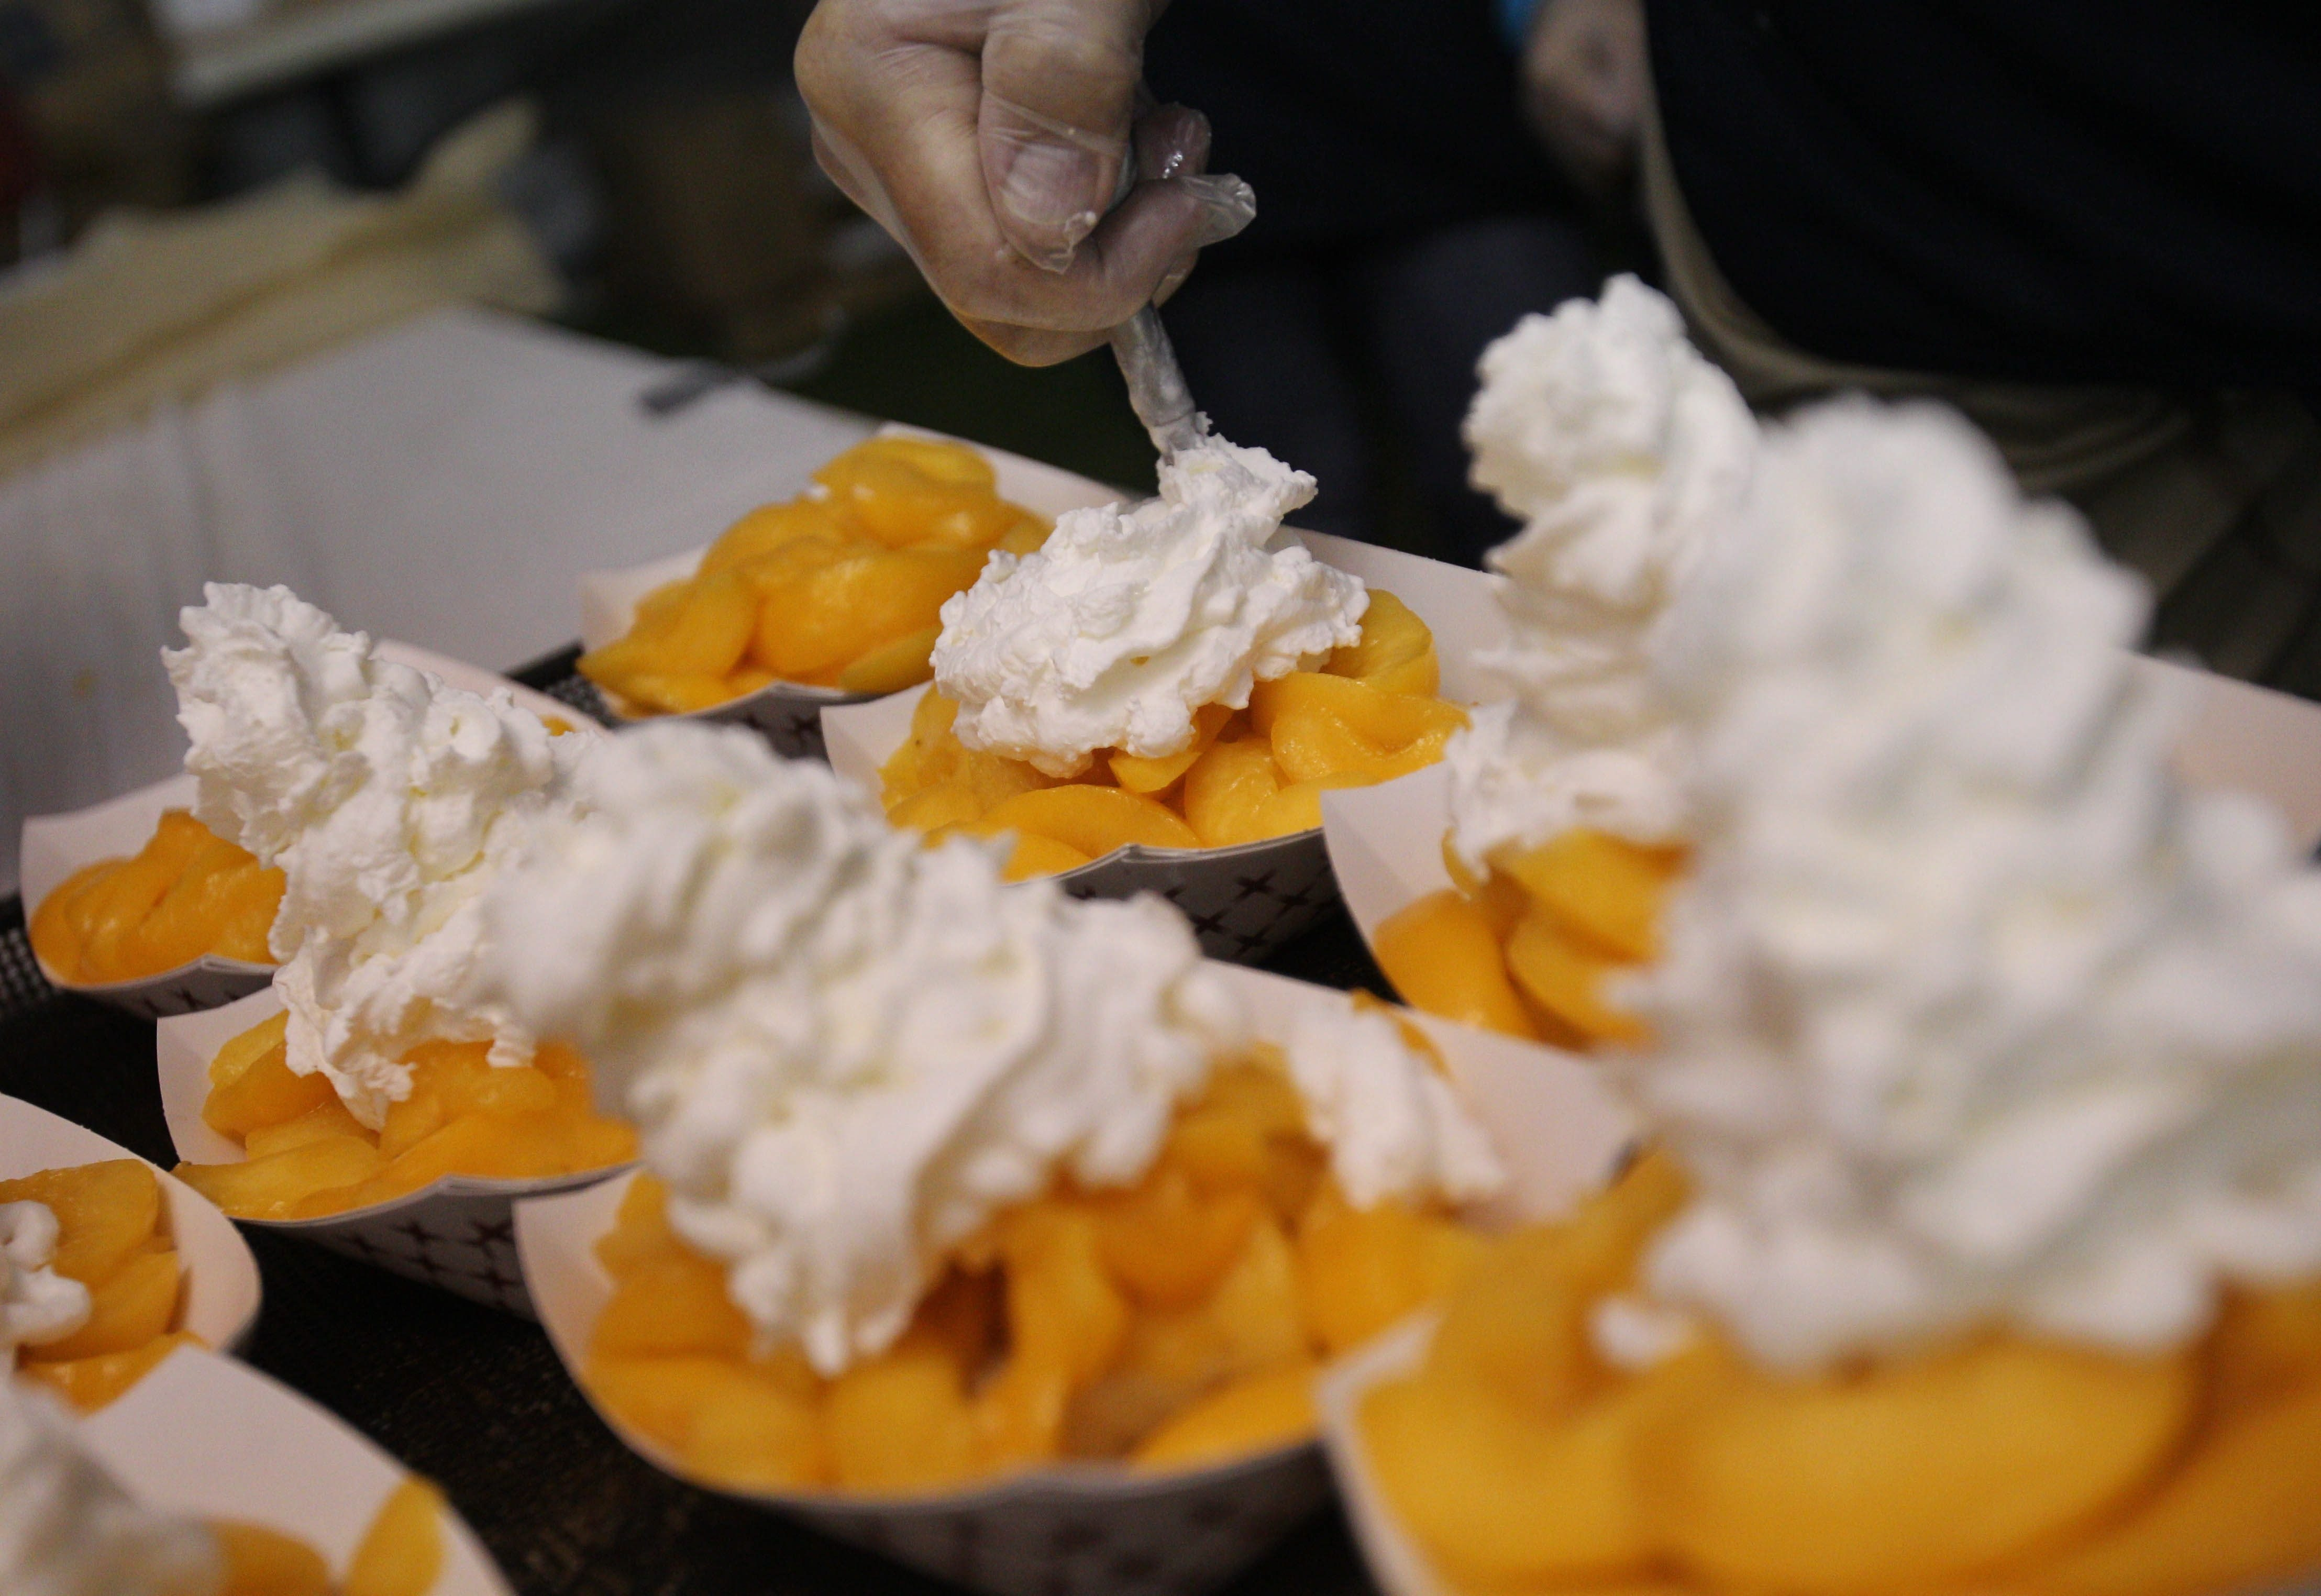 There always is plenty of whipped cream on the peach cobblers at the Lewiston Kiwanis Peach Festival, running Friday through next Sunday.